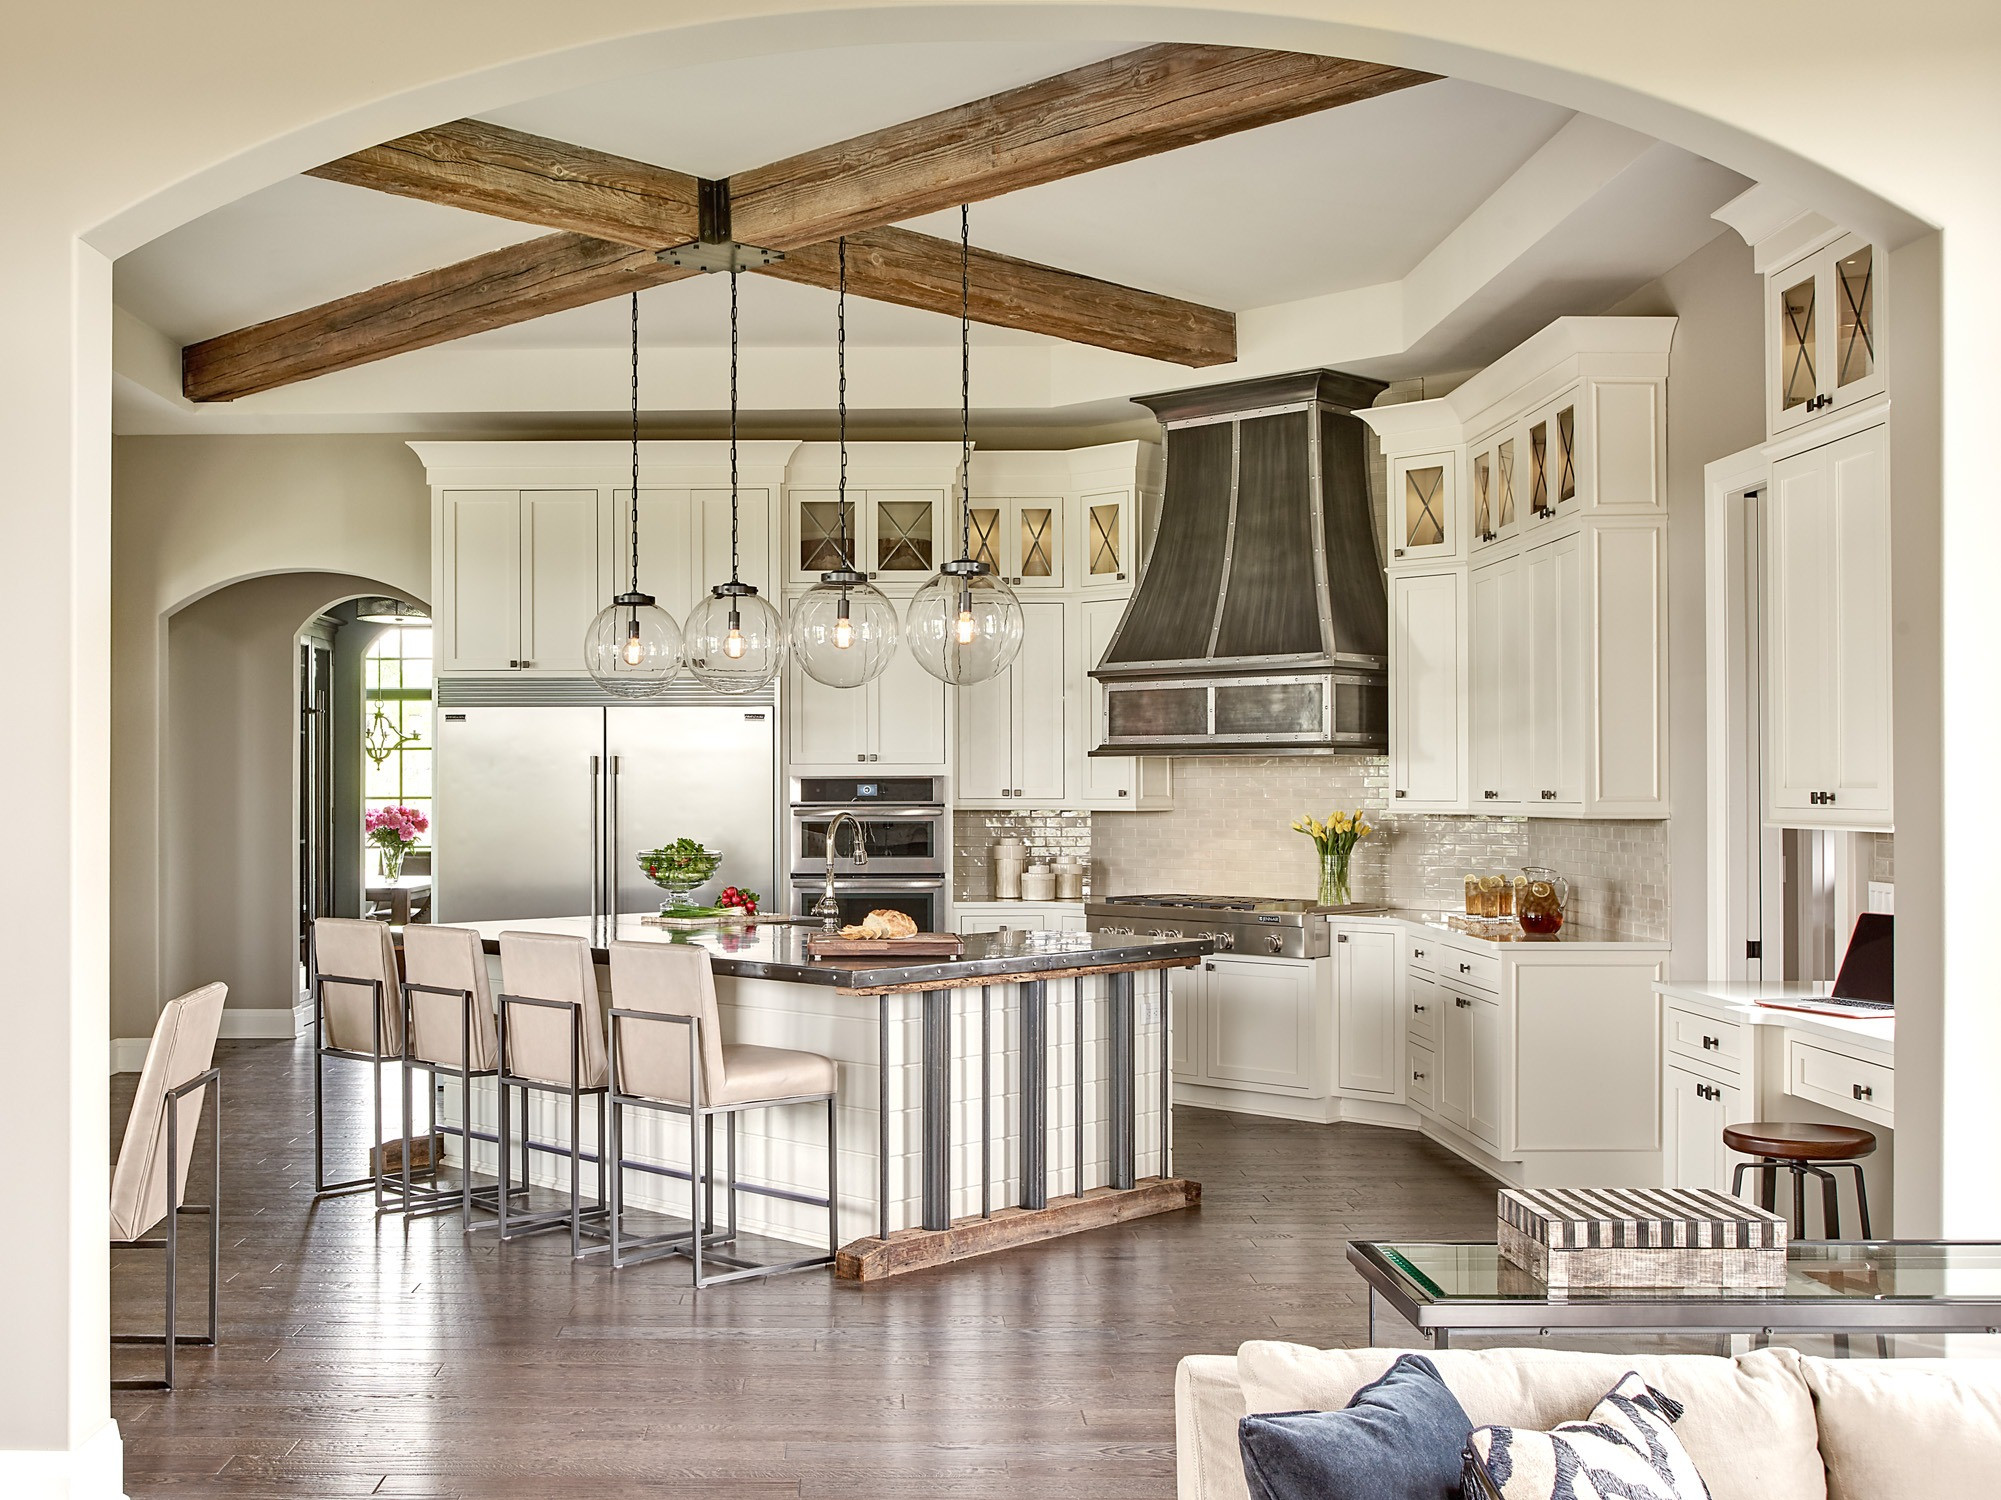 Captivating The Kitchen Went From Clean And Classic To Dazzling Thanks To Hand Wrought  Artisanal Touches That Include A Hand Forged Zinc Countertop And Stove Hood  And A ...